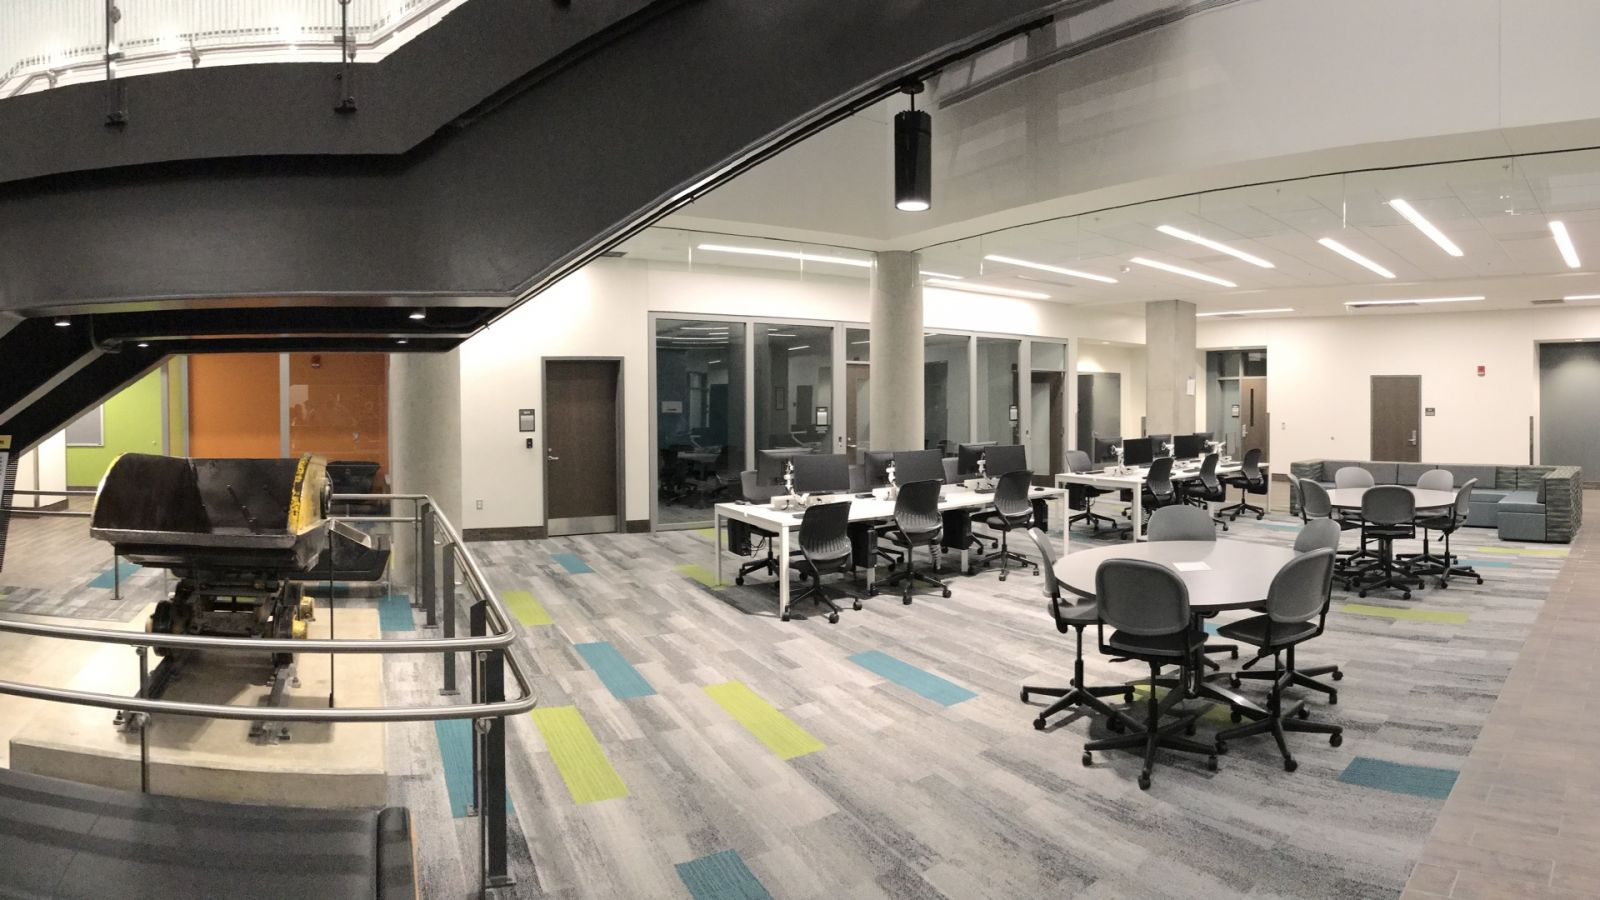 A study space in the Wilmeth Active Learning Center